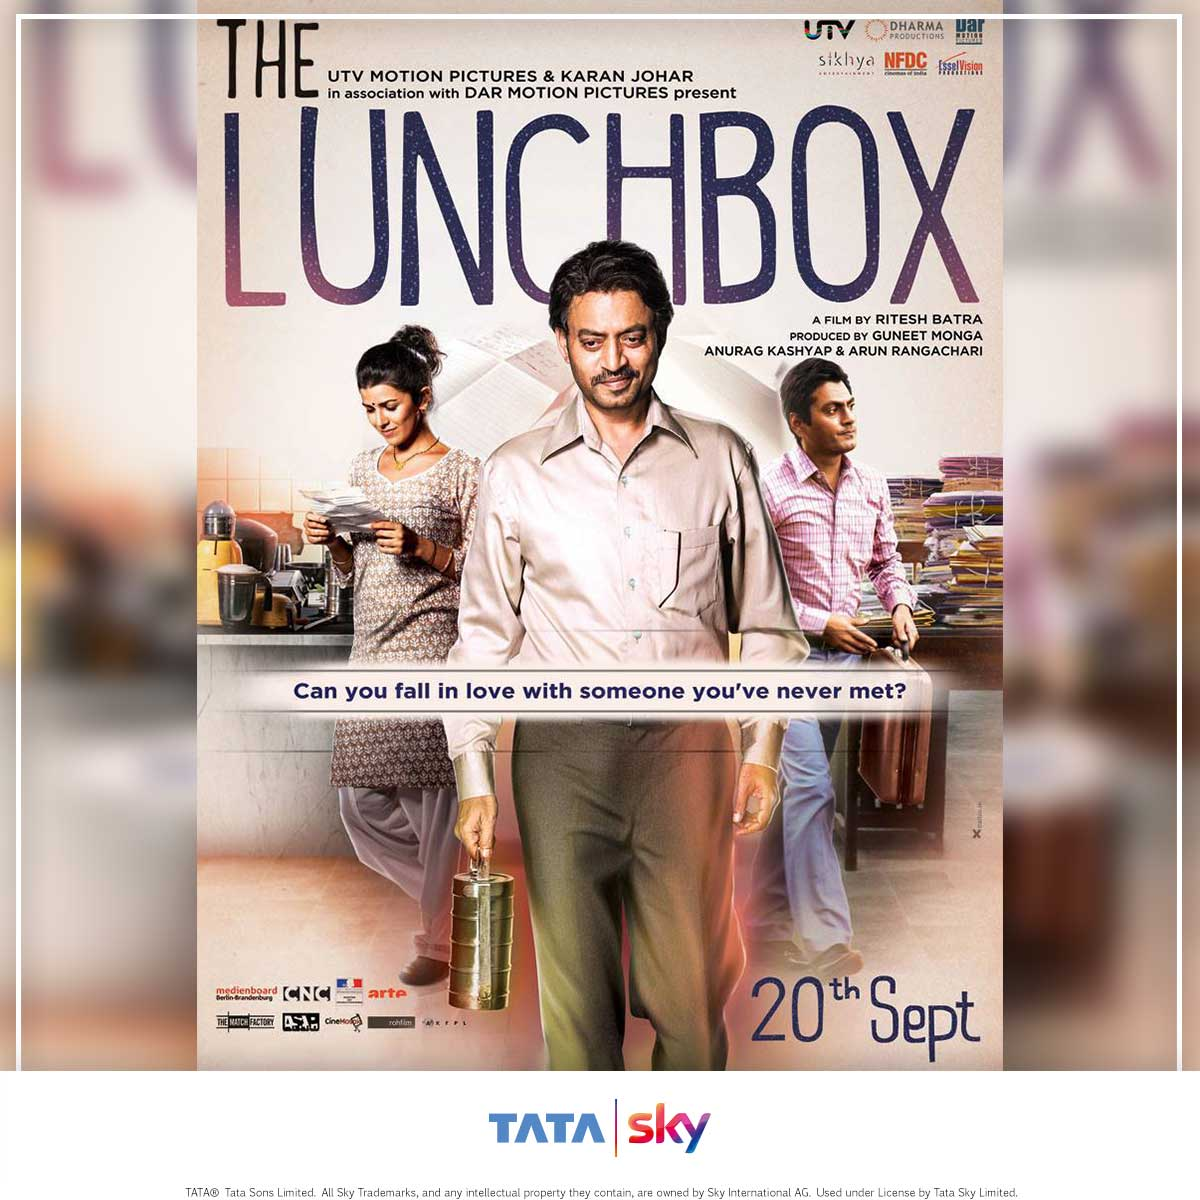 Tata Sky Blogbuster -  The Lunch Box